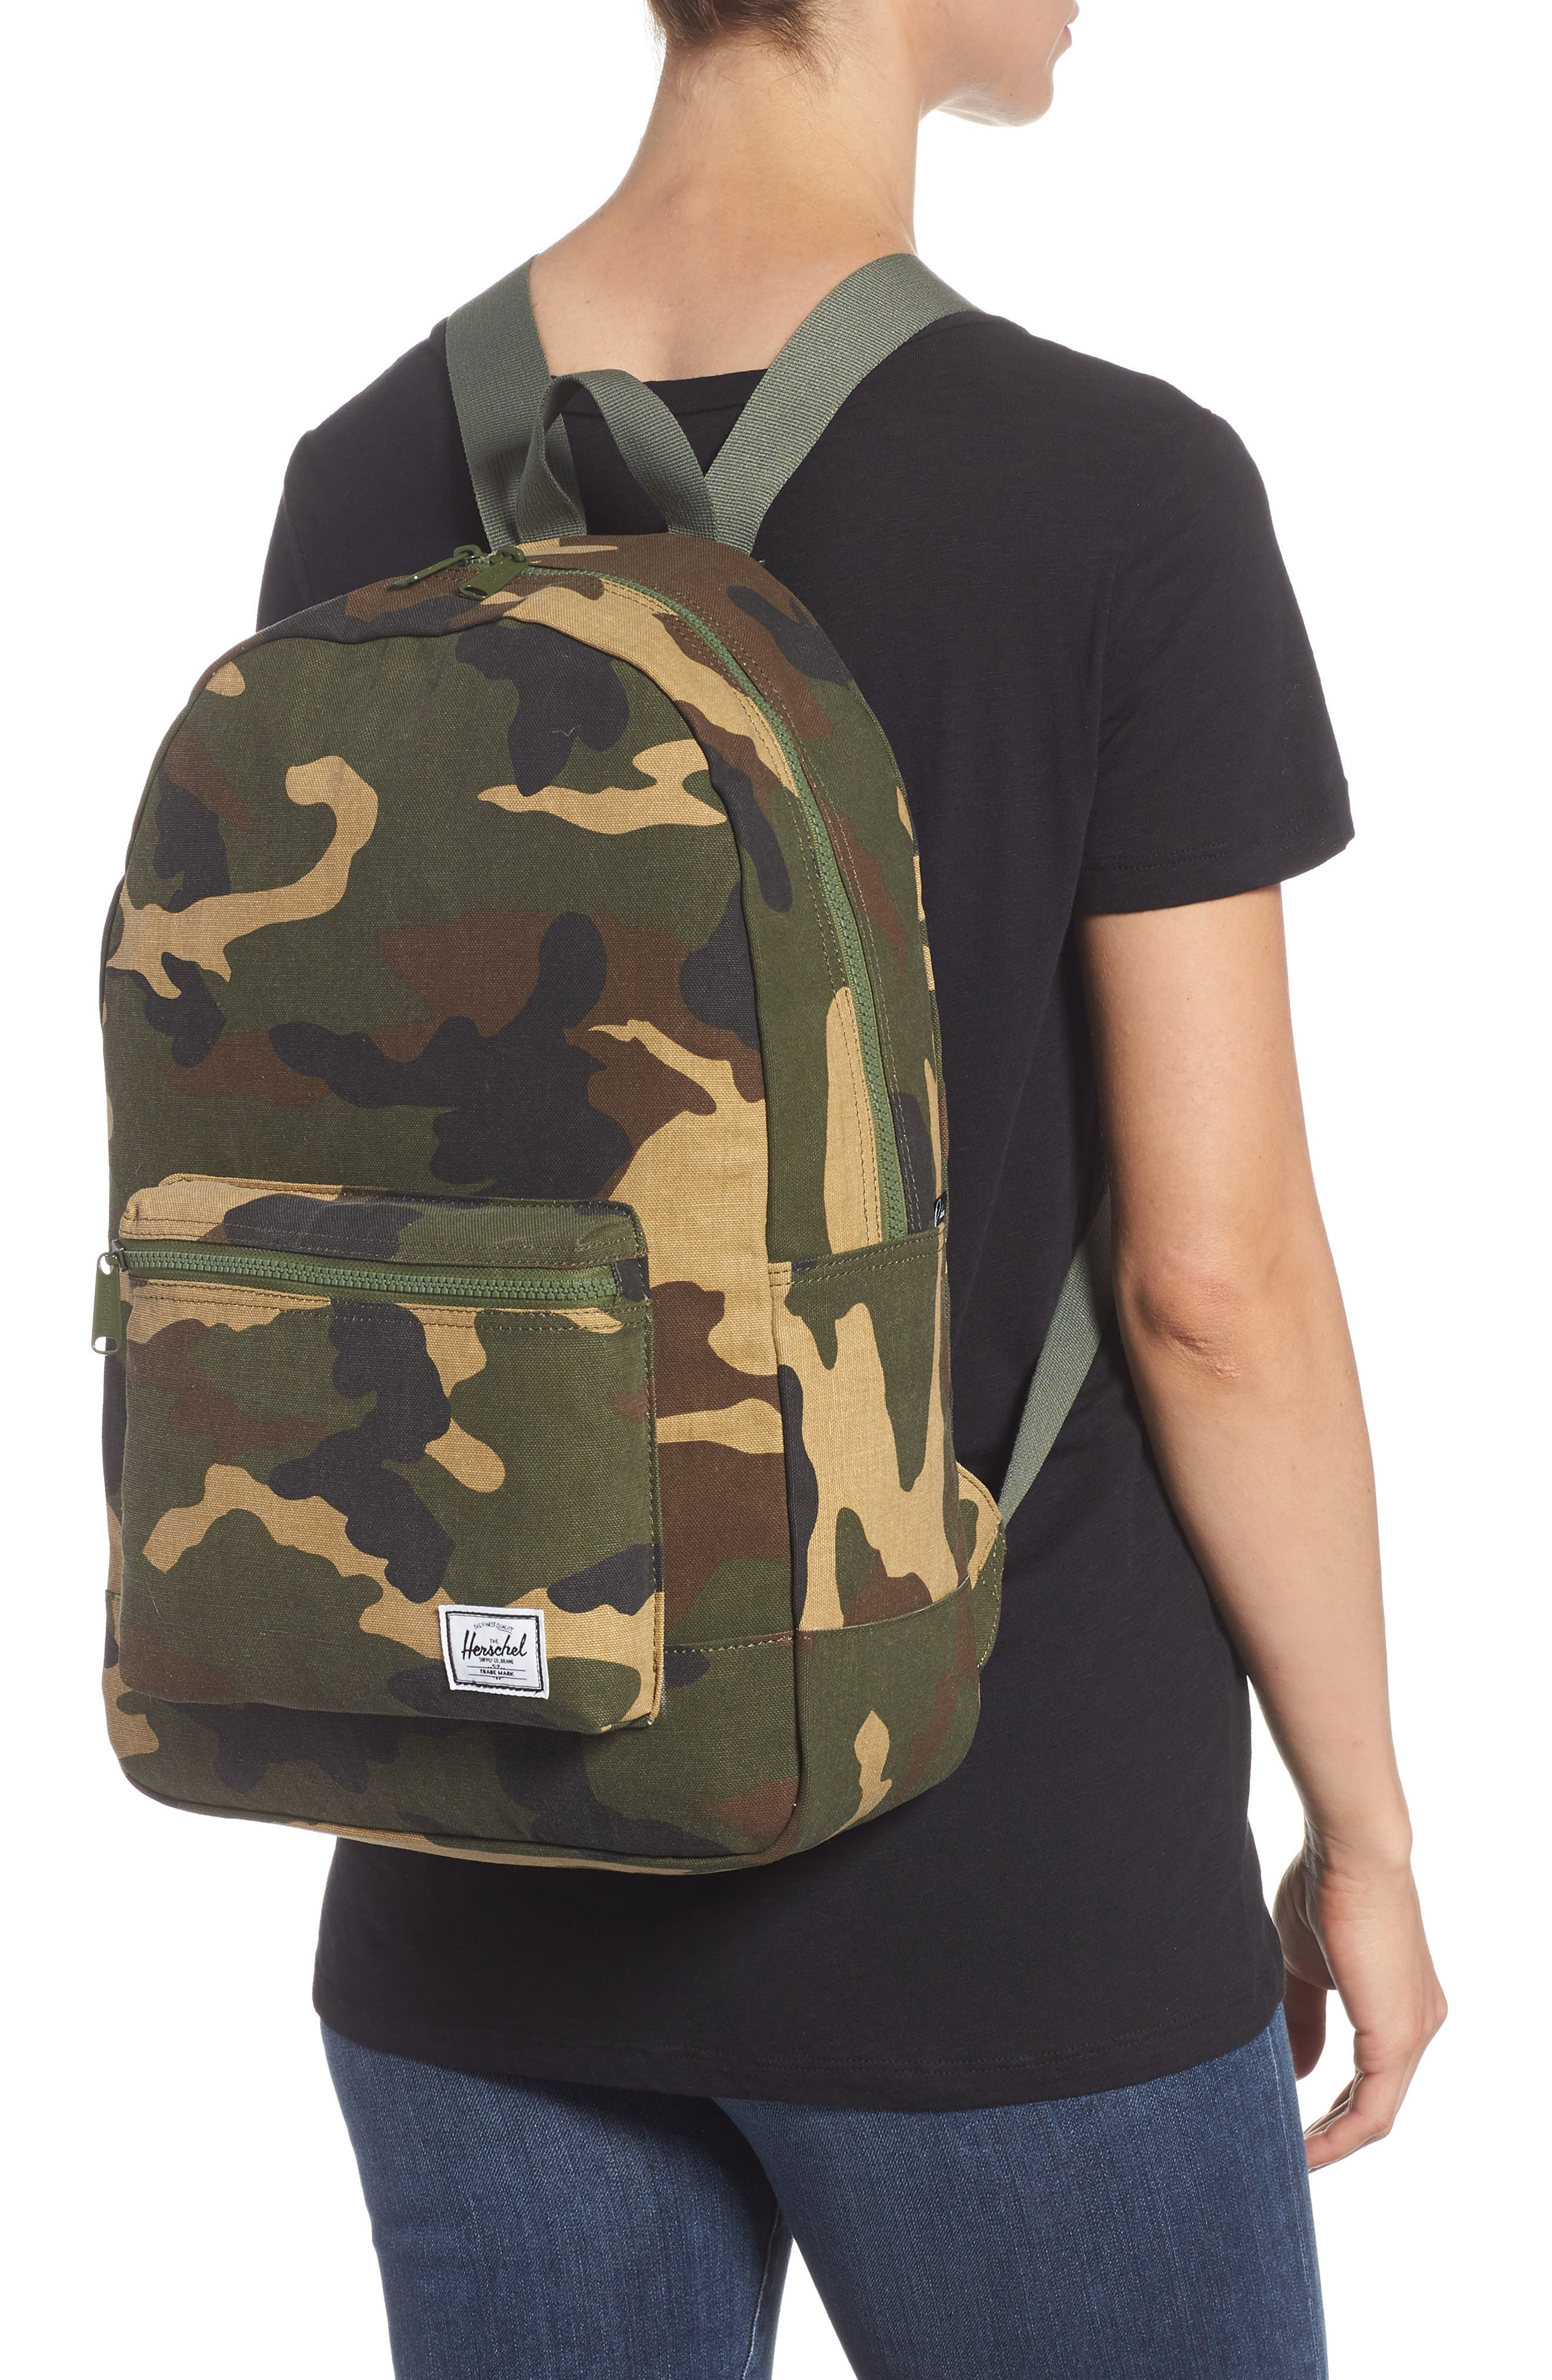 Cotton Casuals Daypack Backpack,                             Alternate thumbnail 11, color,